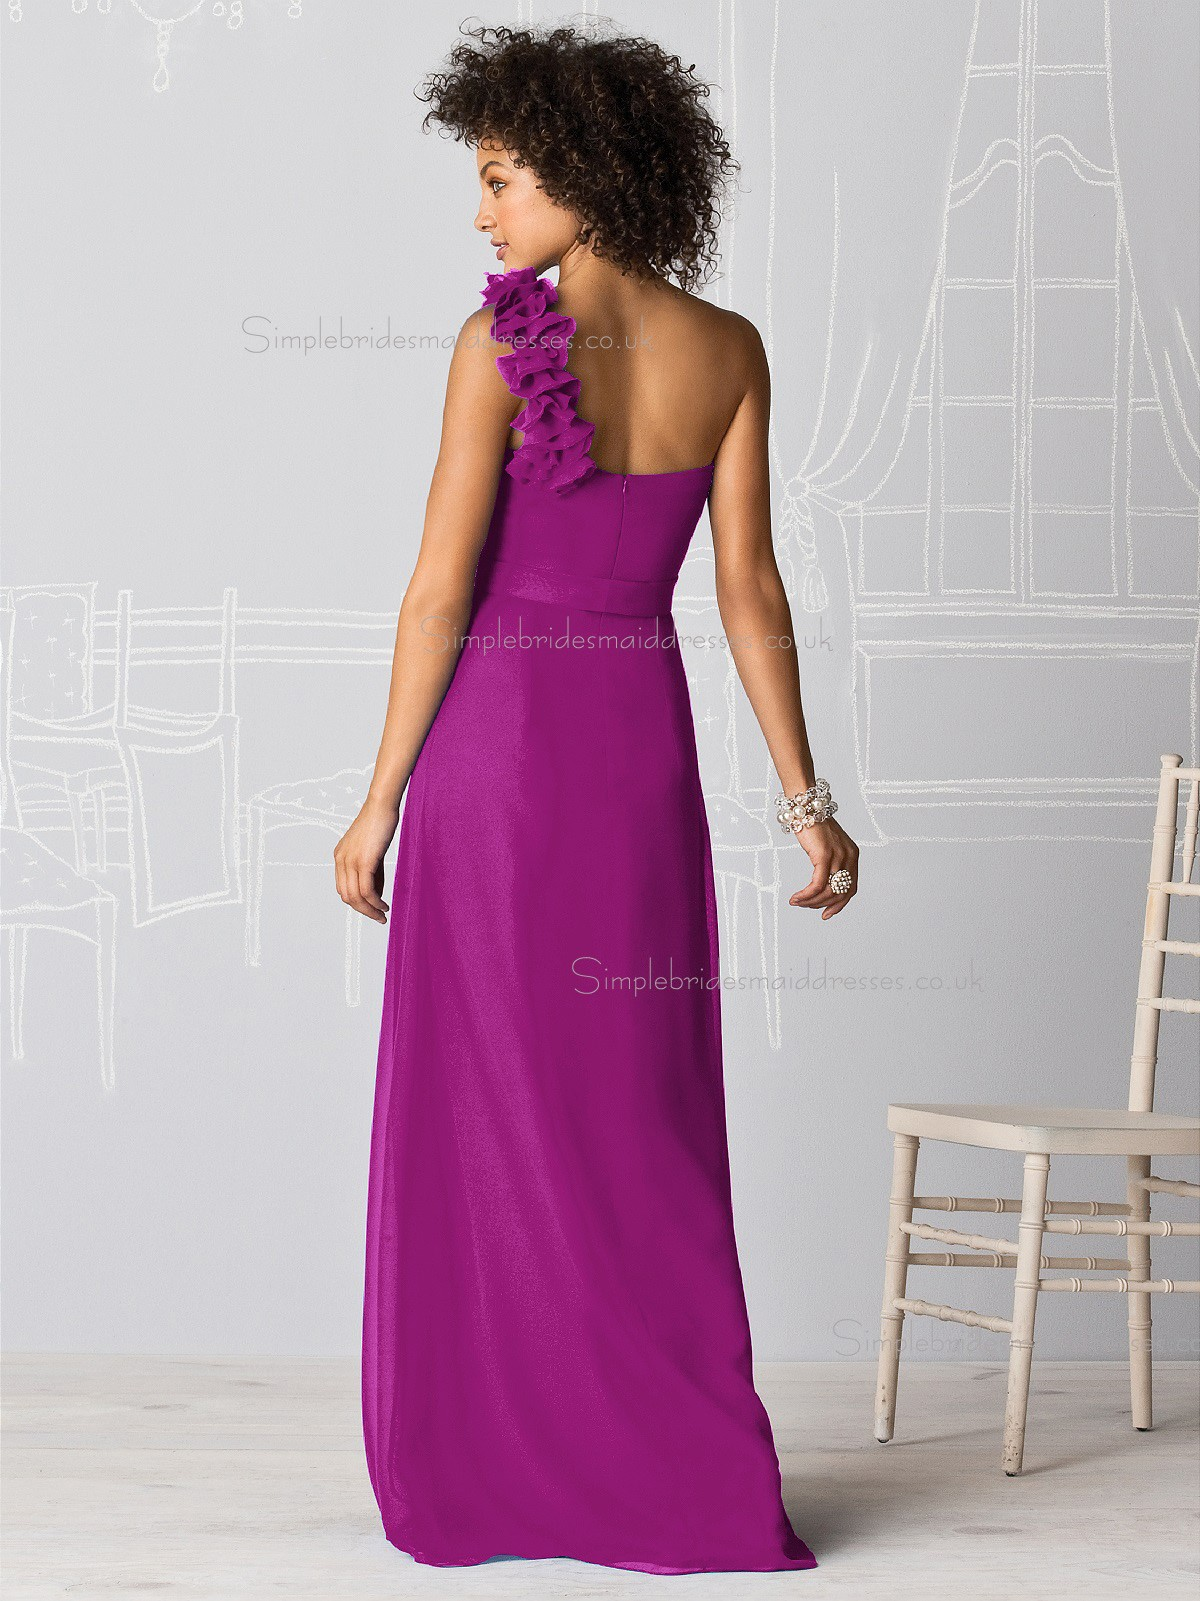 Persian Plum Chiffon Bridesmaid Dresses – Fashion dresses